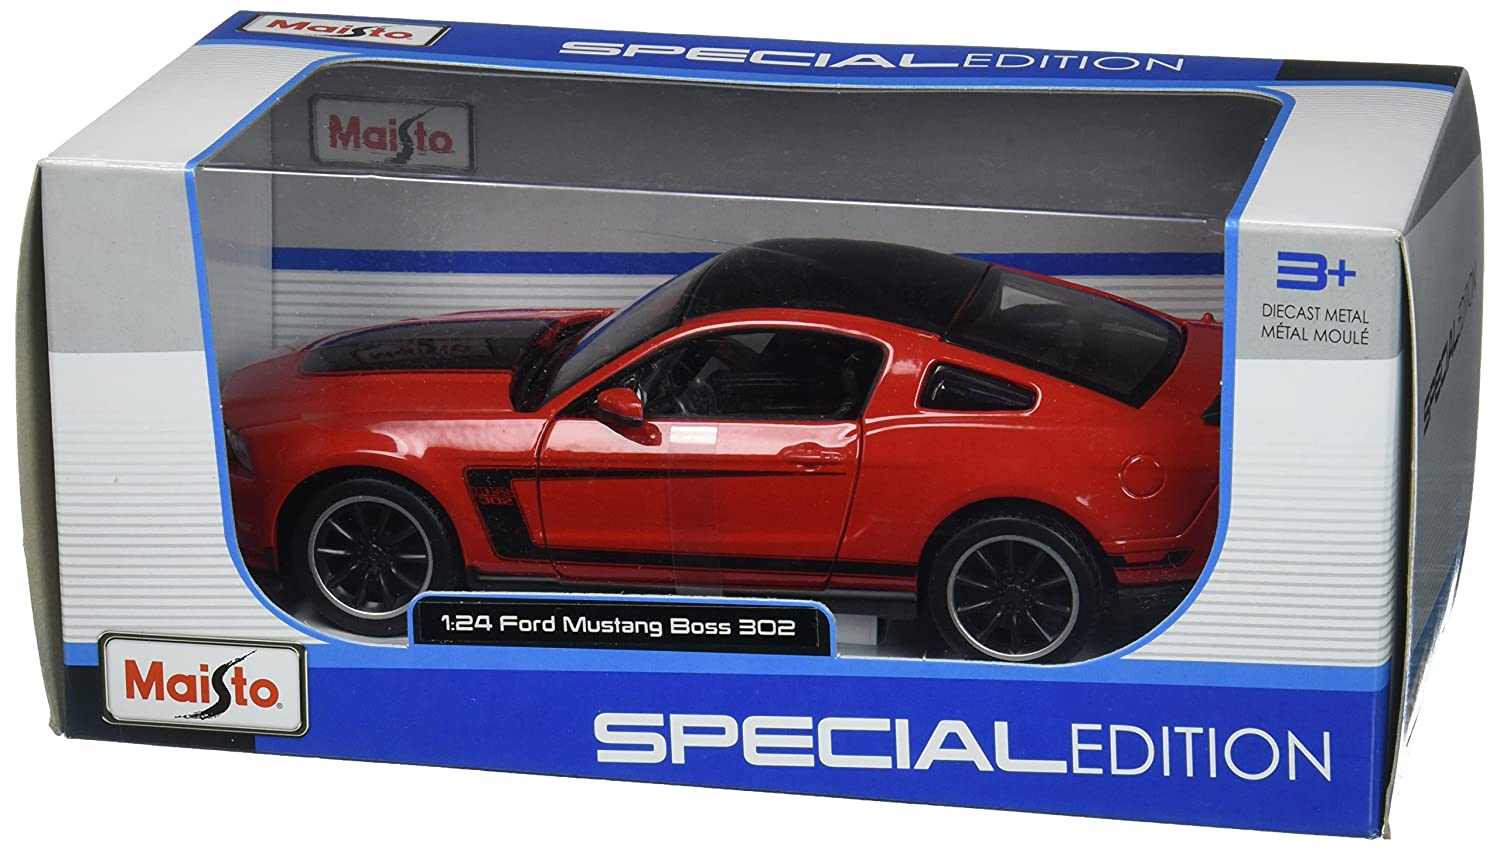 Maisto 2012 Ford Mustang Boss Diecast Vehicle